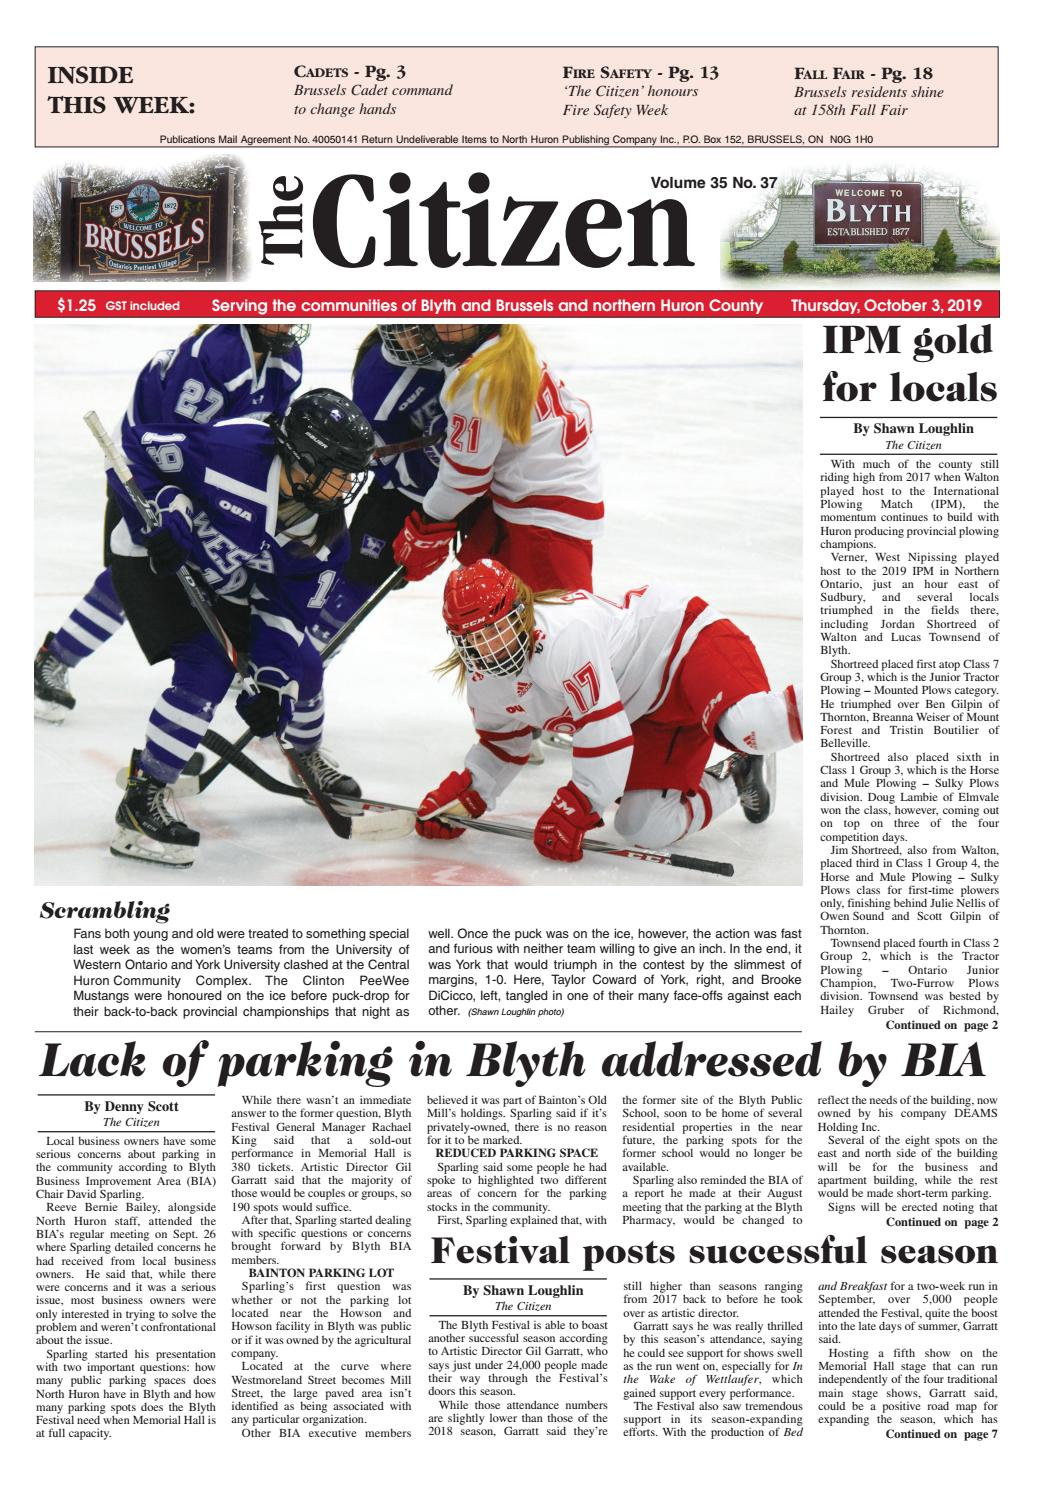 The Citizen Oct 3 2019 by North Huron Publishing pany